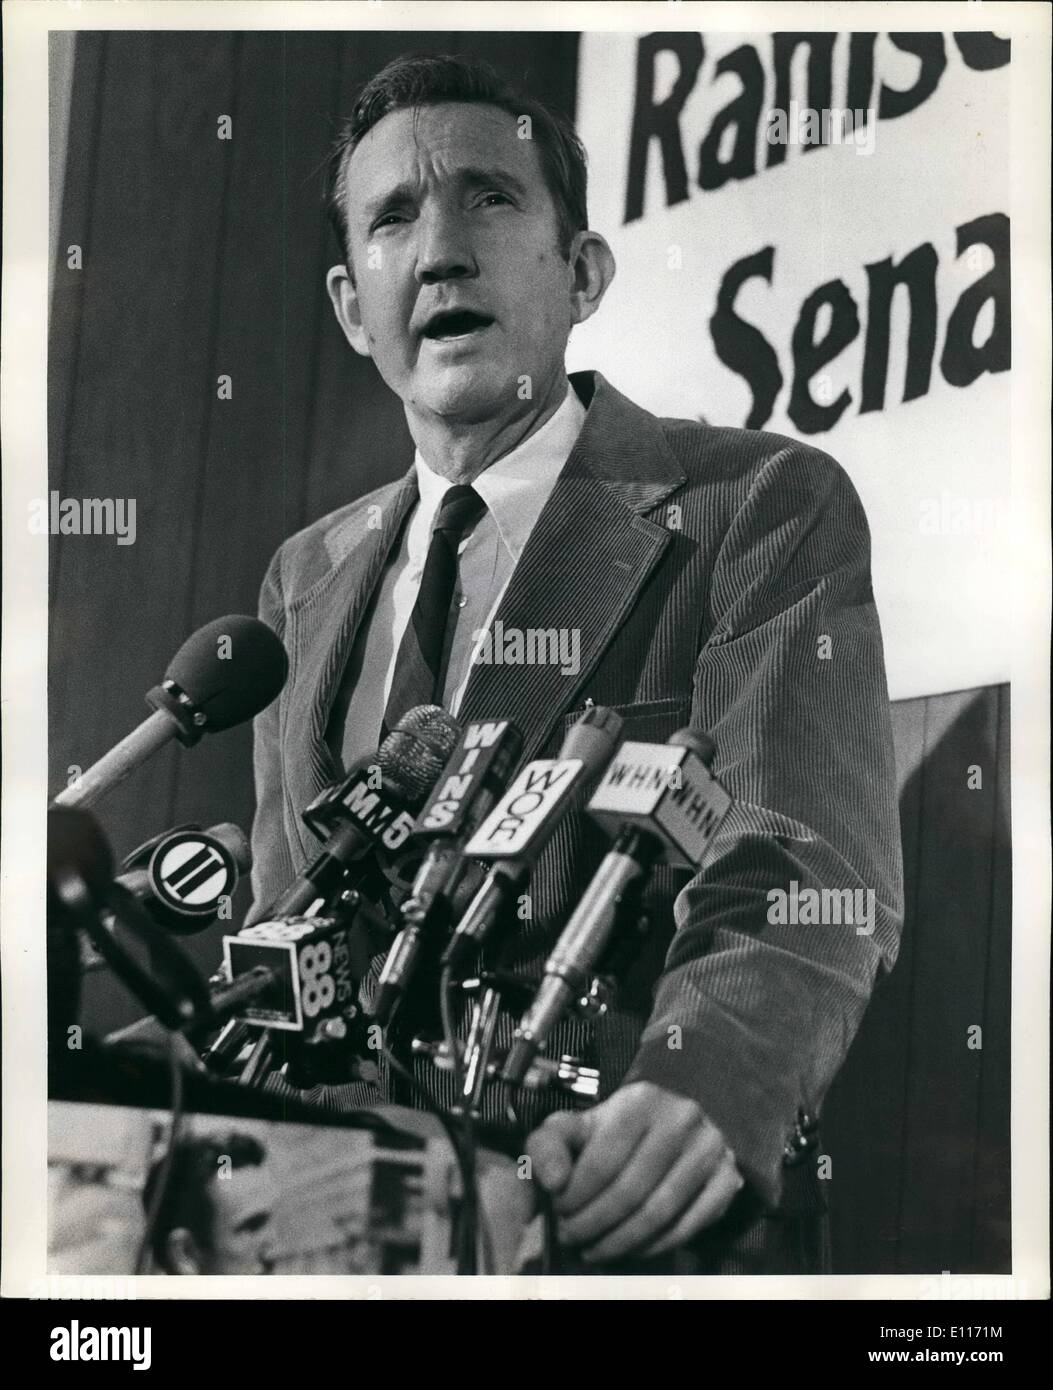 Mar. 03, 1976 - Former US Attorney General Ramsey Clark formally announcing his Candidacy for the US Senate seat from New York which is presently held James Buckley. Ms. Clark is a democrar. - Stock Image